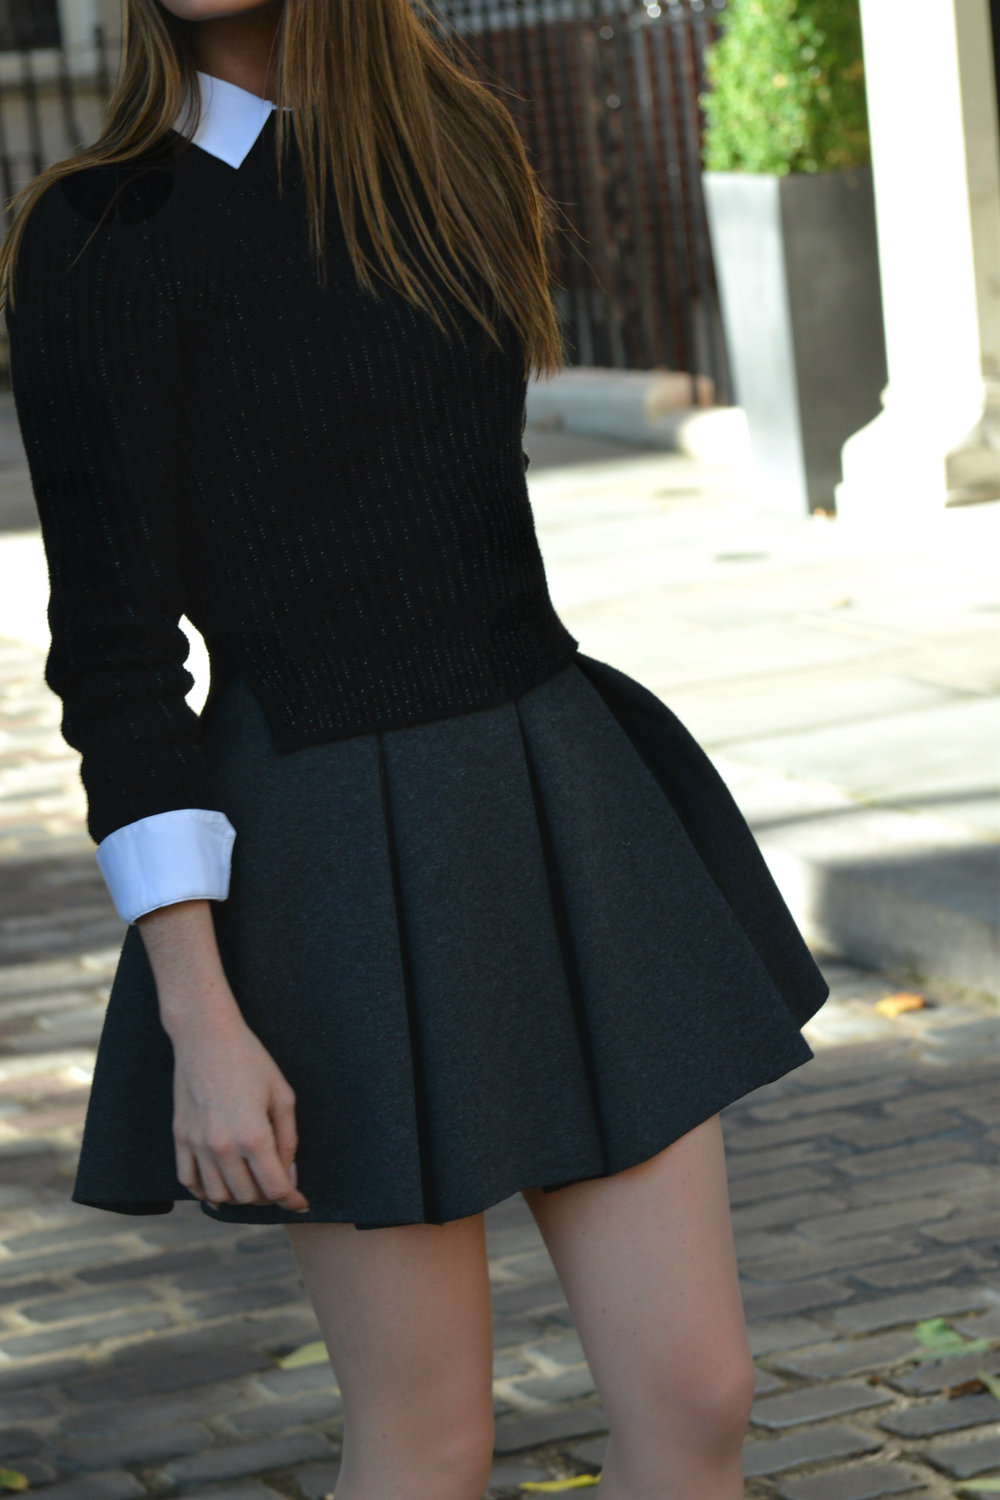 BACK TO SCHOOL: BLAIR WALDORF STYLE, UNIFORMS TRENDS BY MAUREEN SOPHIE KRAGT BLOGGER FROM THEVANILLAWOODS.  SKIRT &   WHITE SHIRT BY ZARA, SNEAKERS BY JIMMY CHOO photo (9)